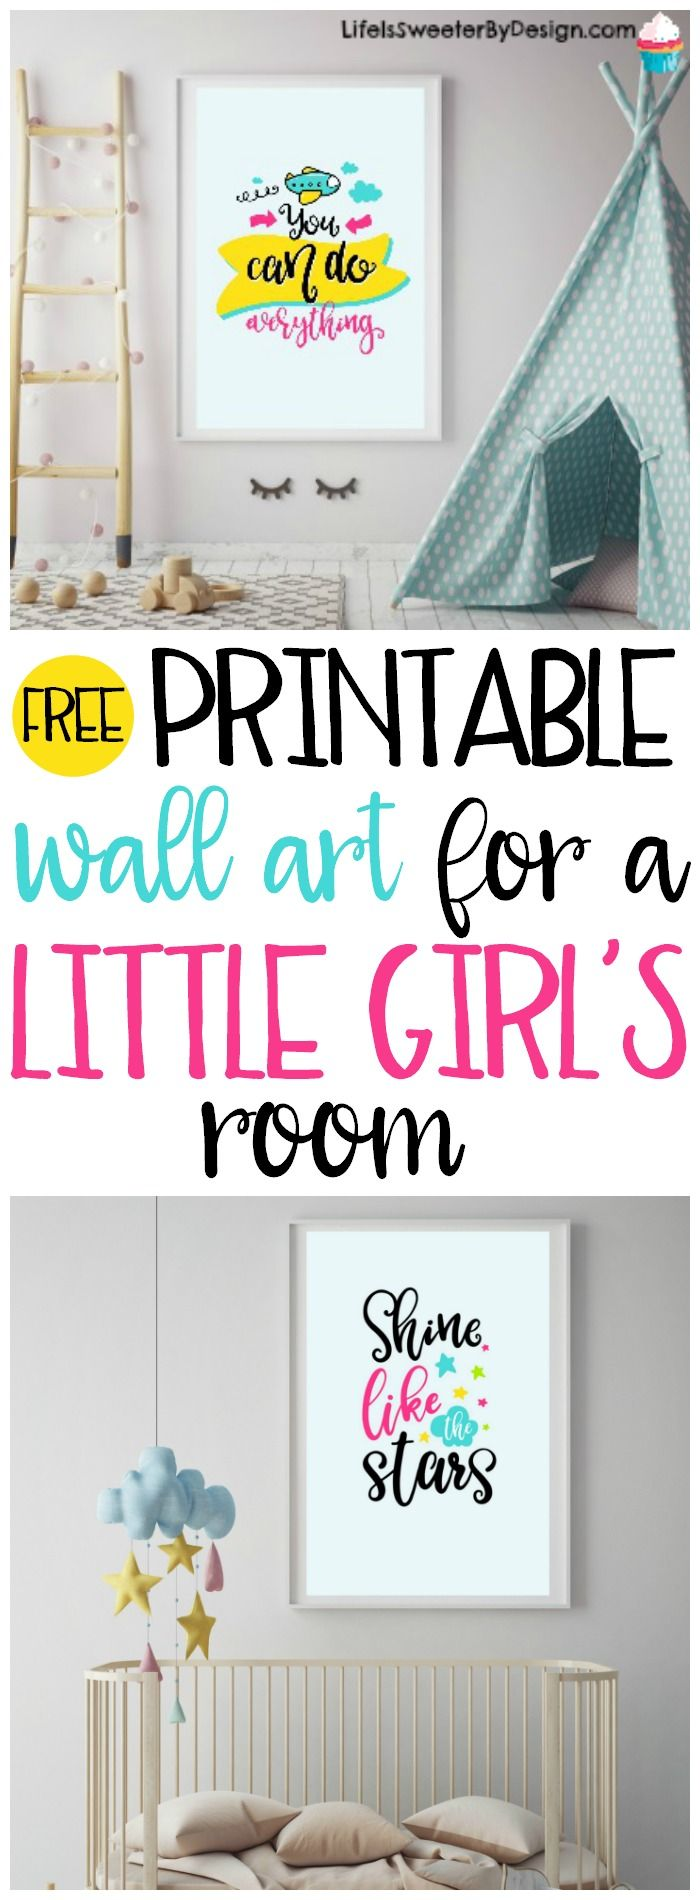 Free Printable Wall Art For A Little Girl S Room Will Add